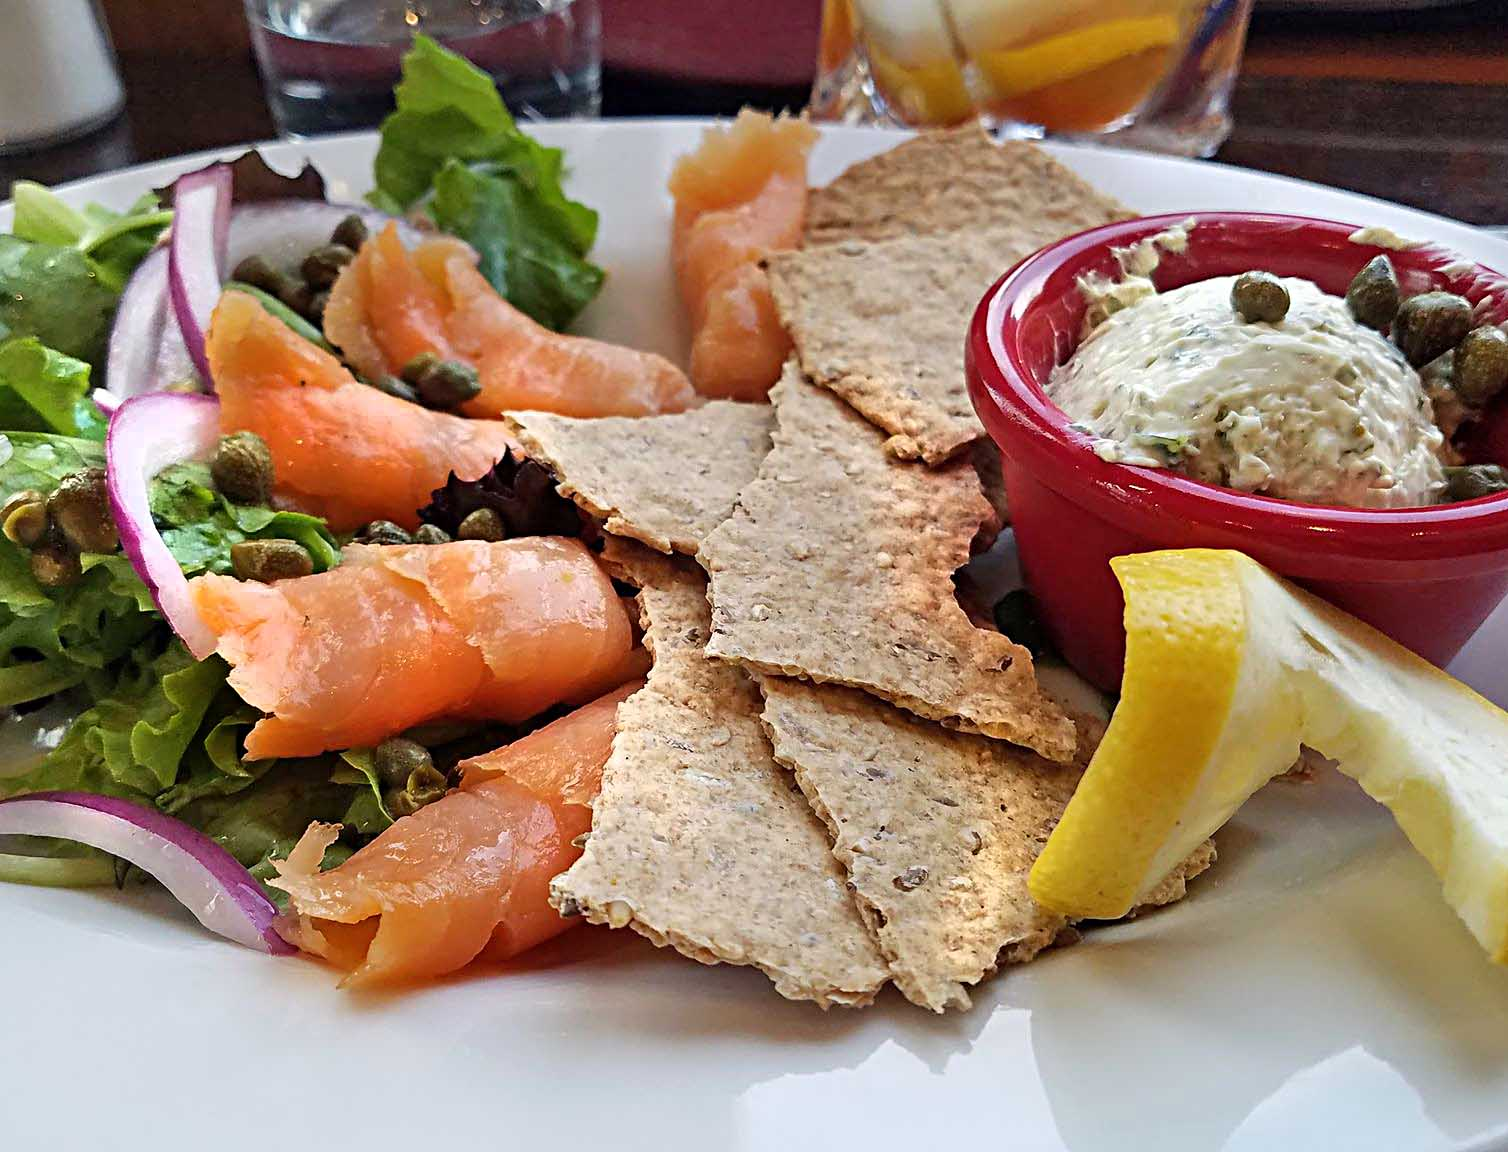 smoked salmon served with crackers and soft cheese at the Hardwick Street Cafe in Greensboro vt